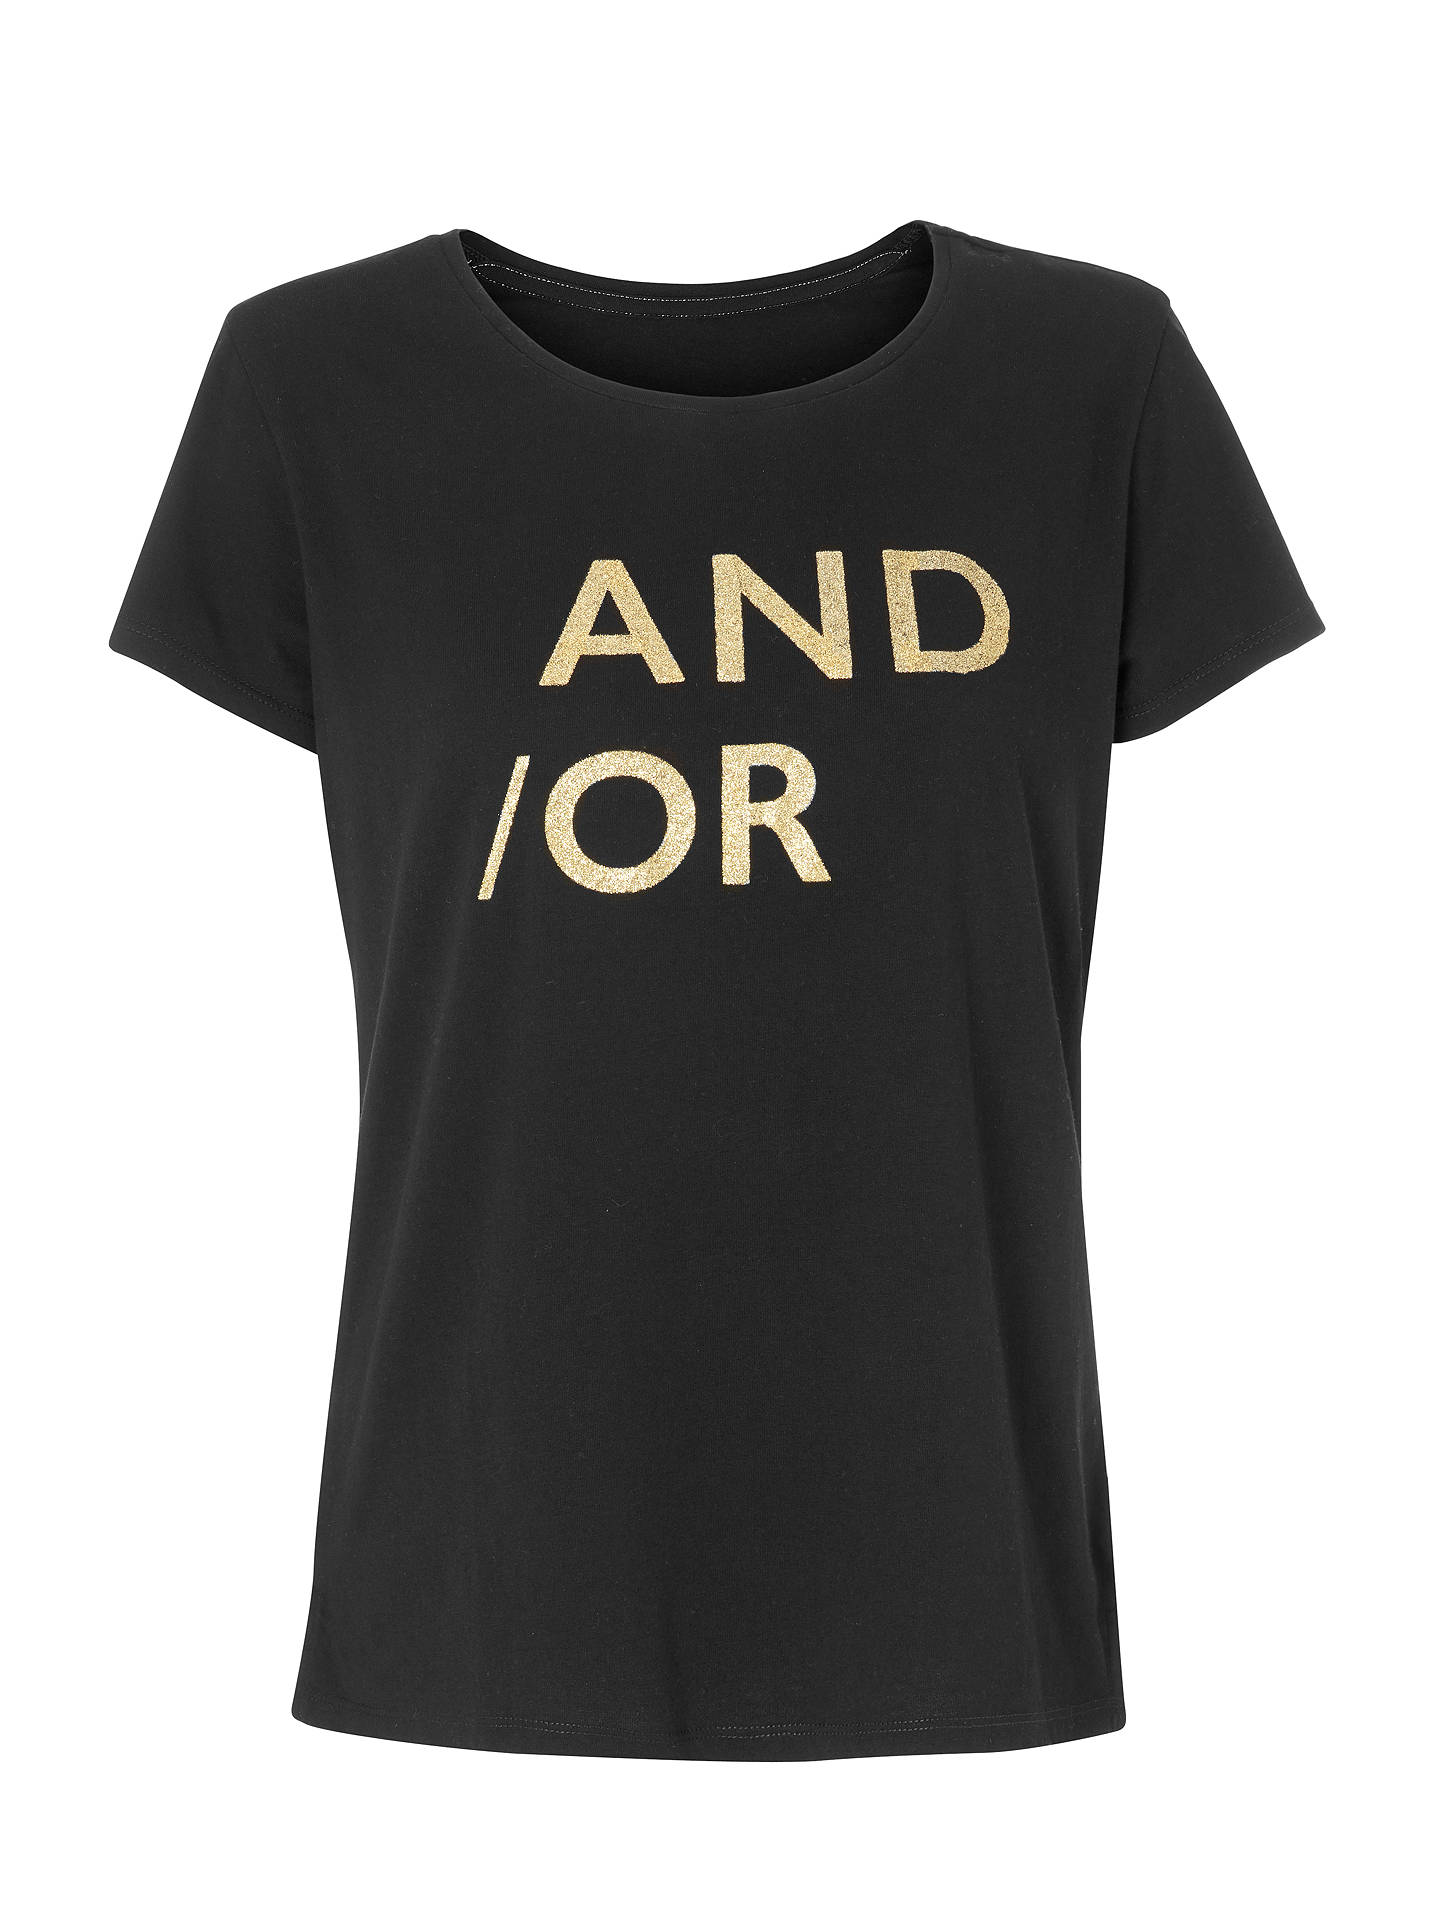 Buy AND/OR Glitter Slogan T-Shirt, Black/Gold, 8 Online at johnlewis.com